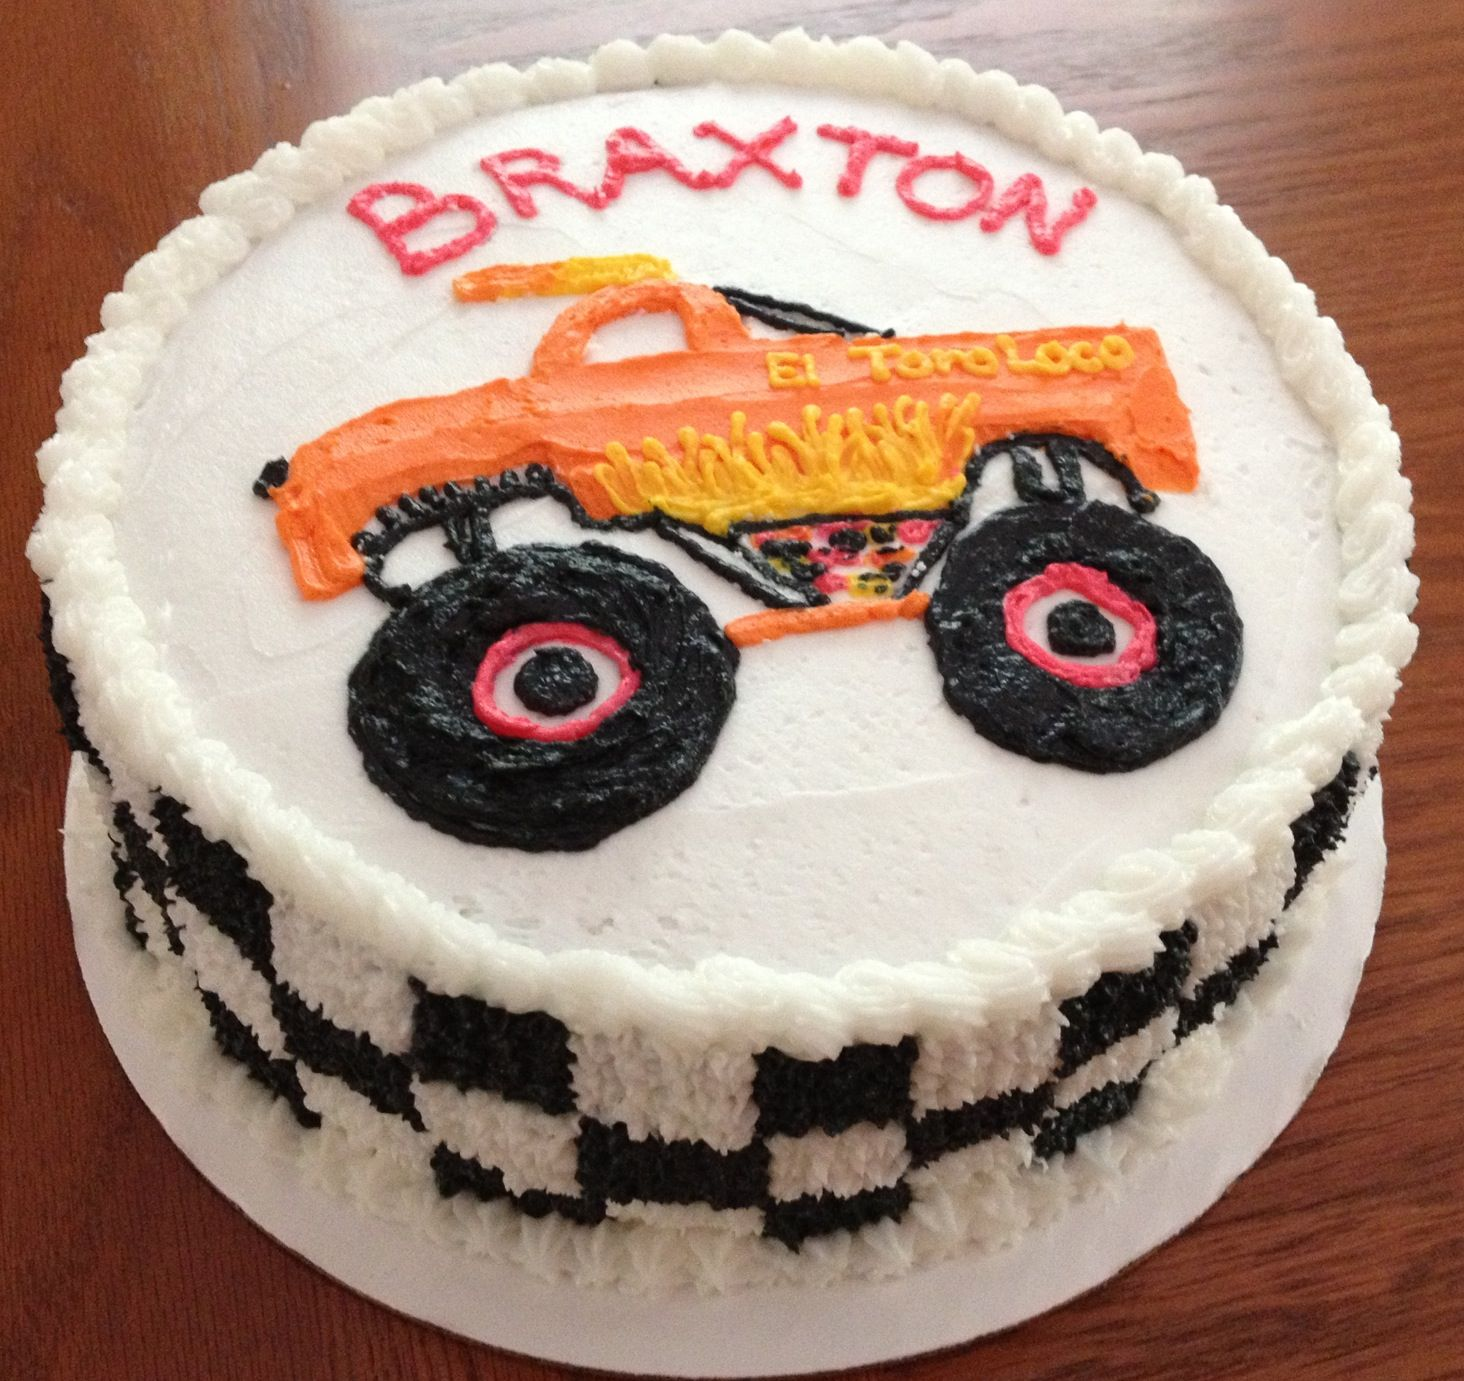 Monster truck El Toro Loco cake I made for my sons 5th birthday